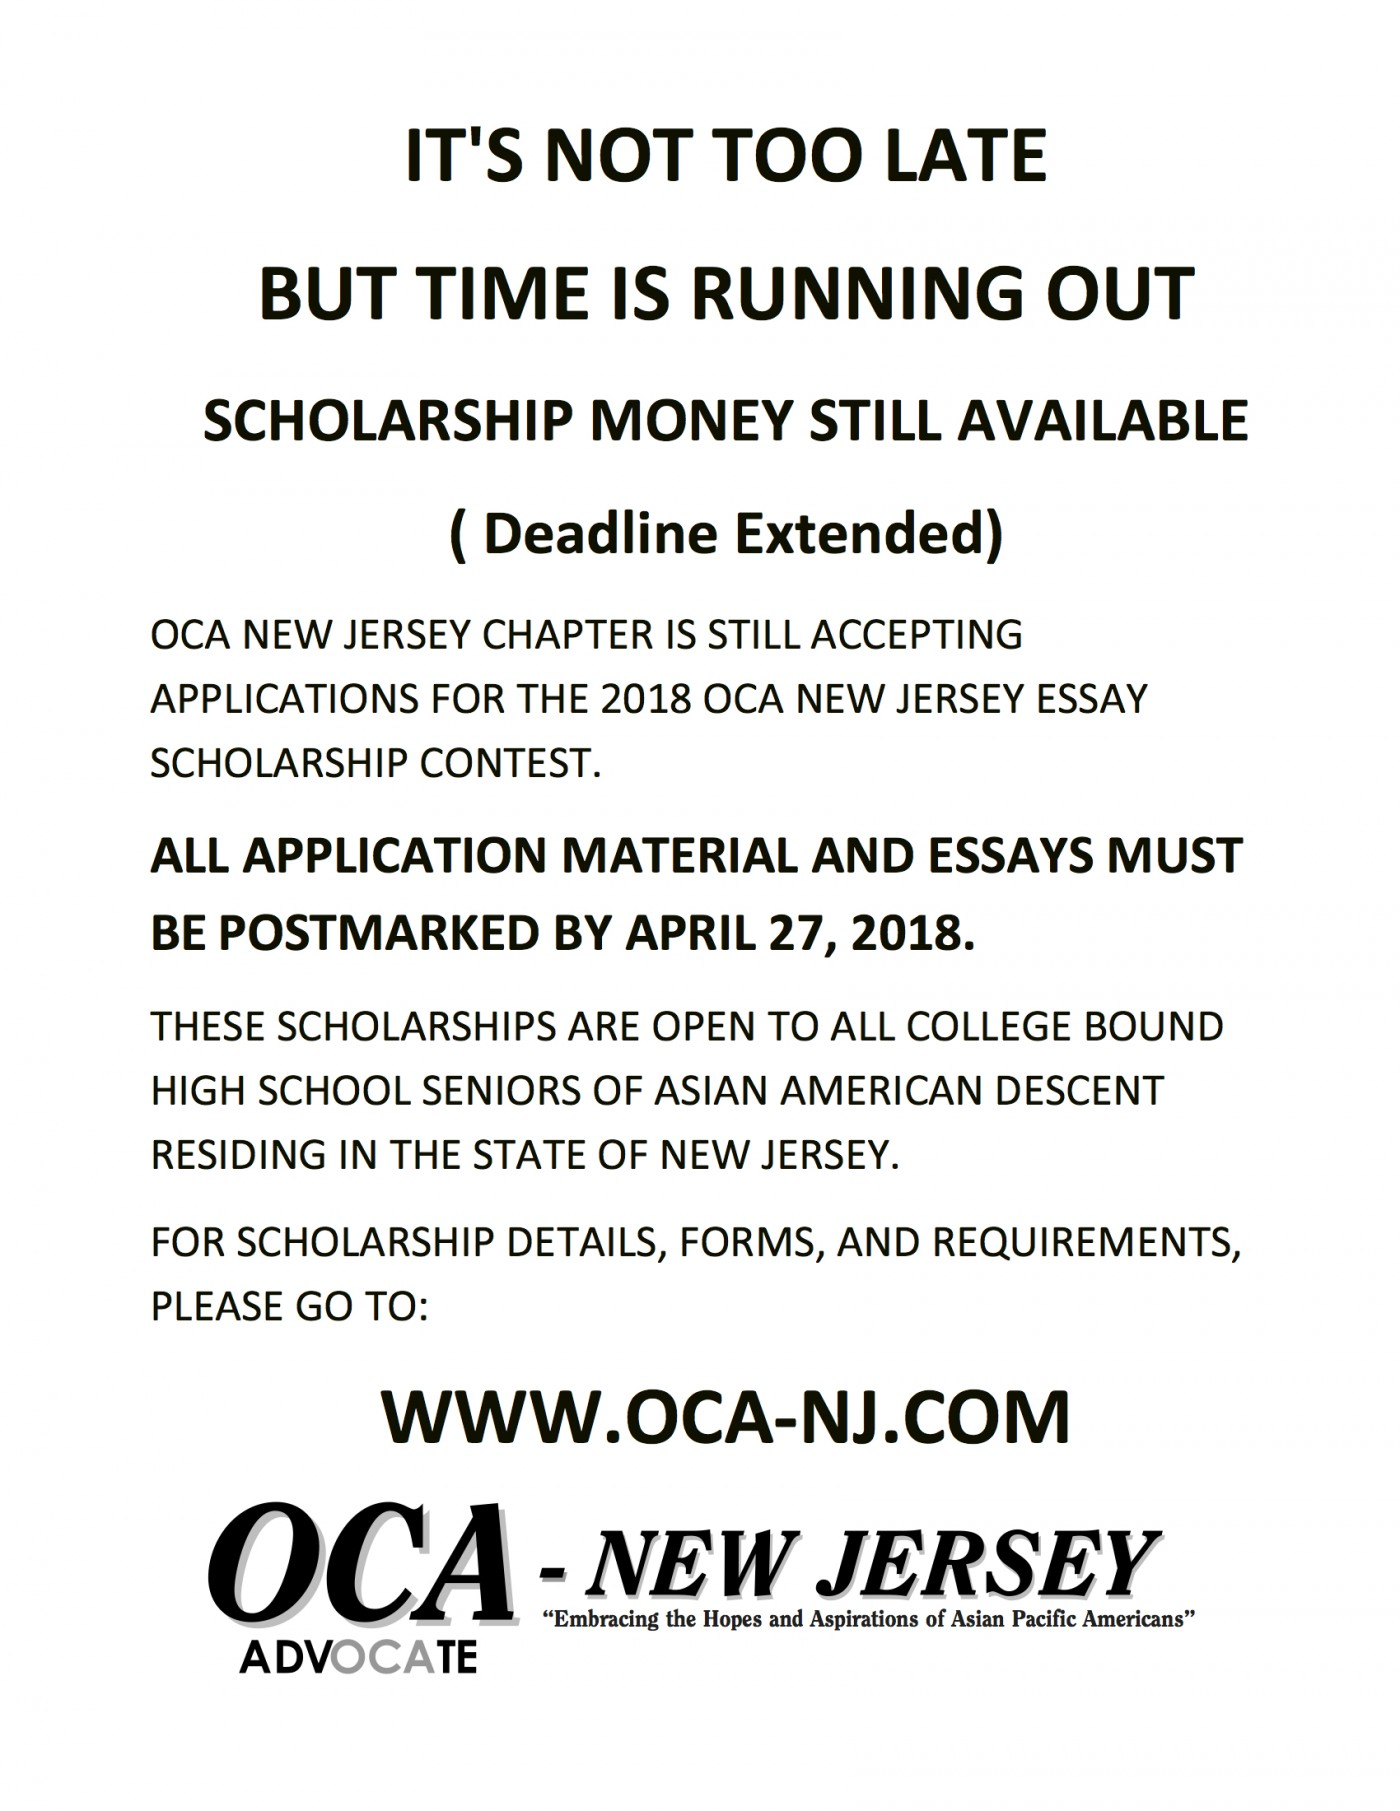 014 Essay Example Scholarships Entended Deadline Oca Nj Shocking 2018 For International Students Examples Canada 2019 1400